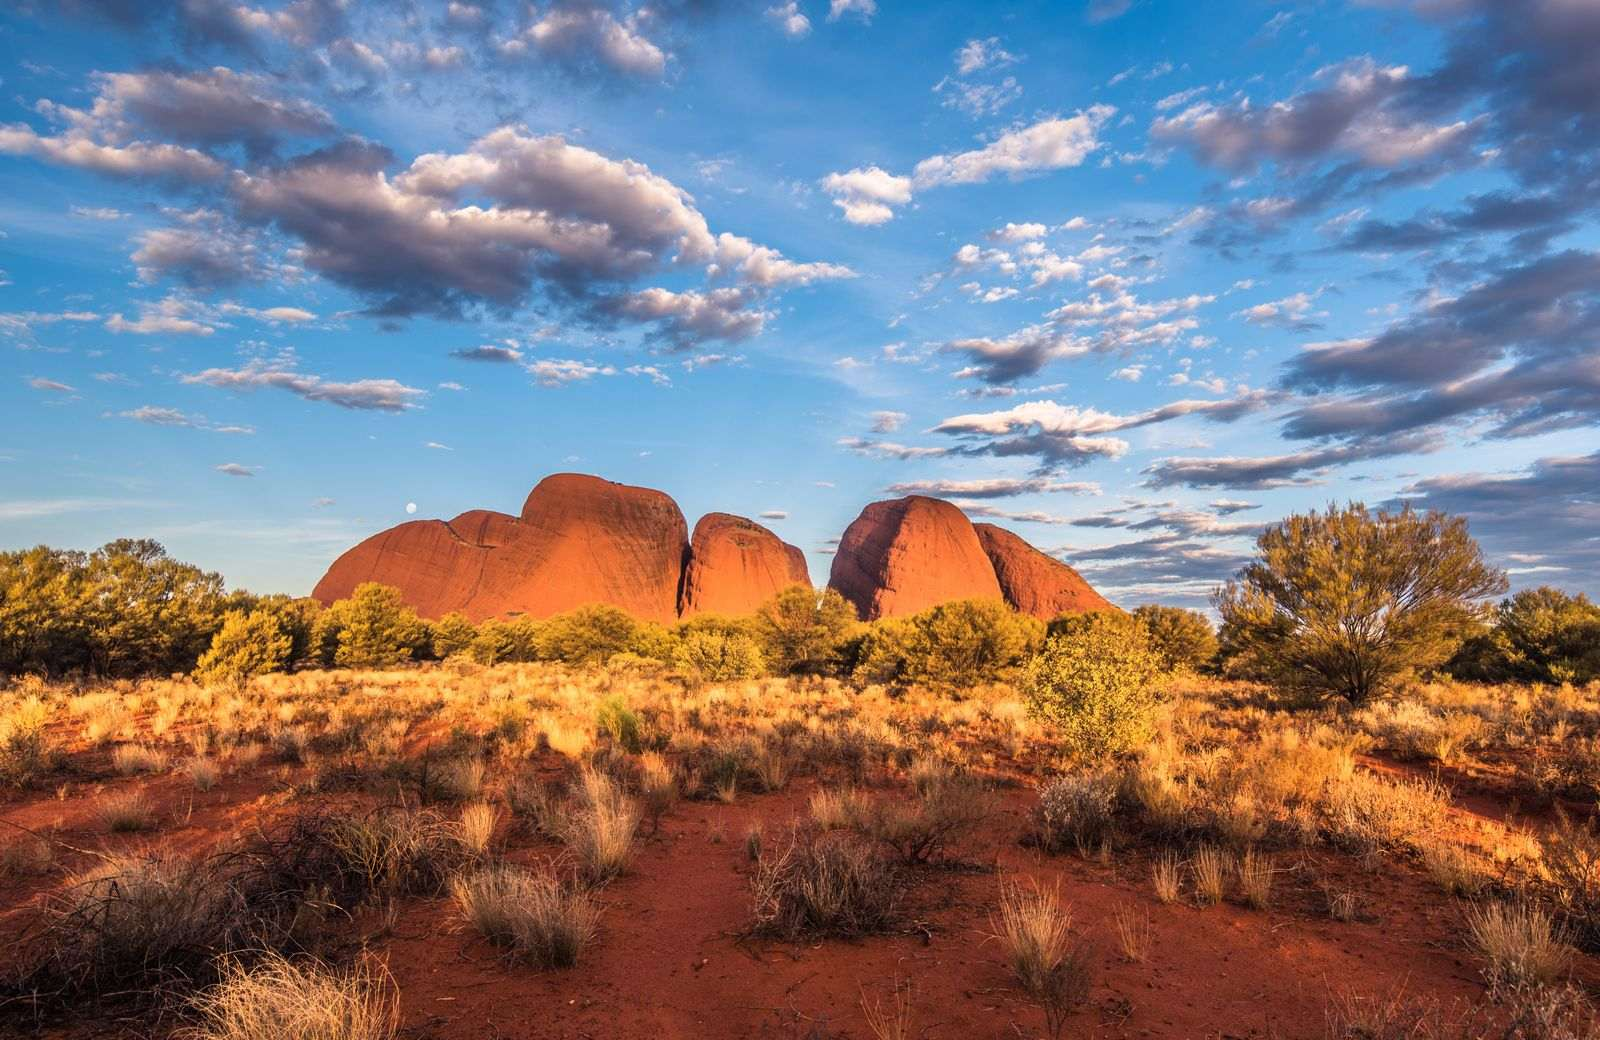 Australia is the perfect place to get a working holiday visa for Canadians.